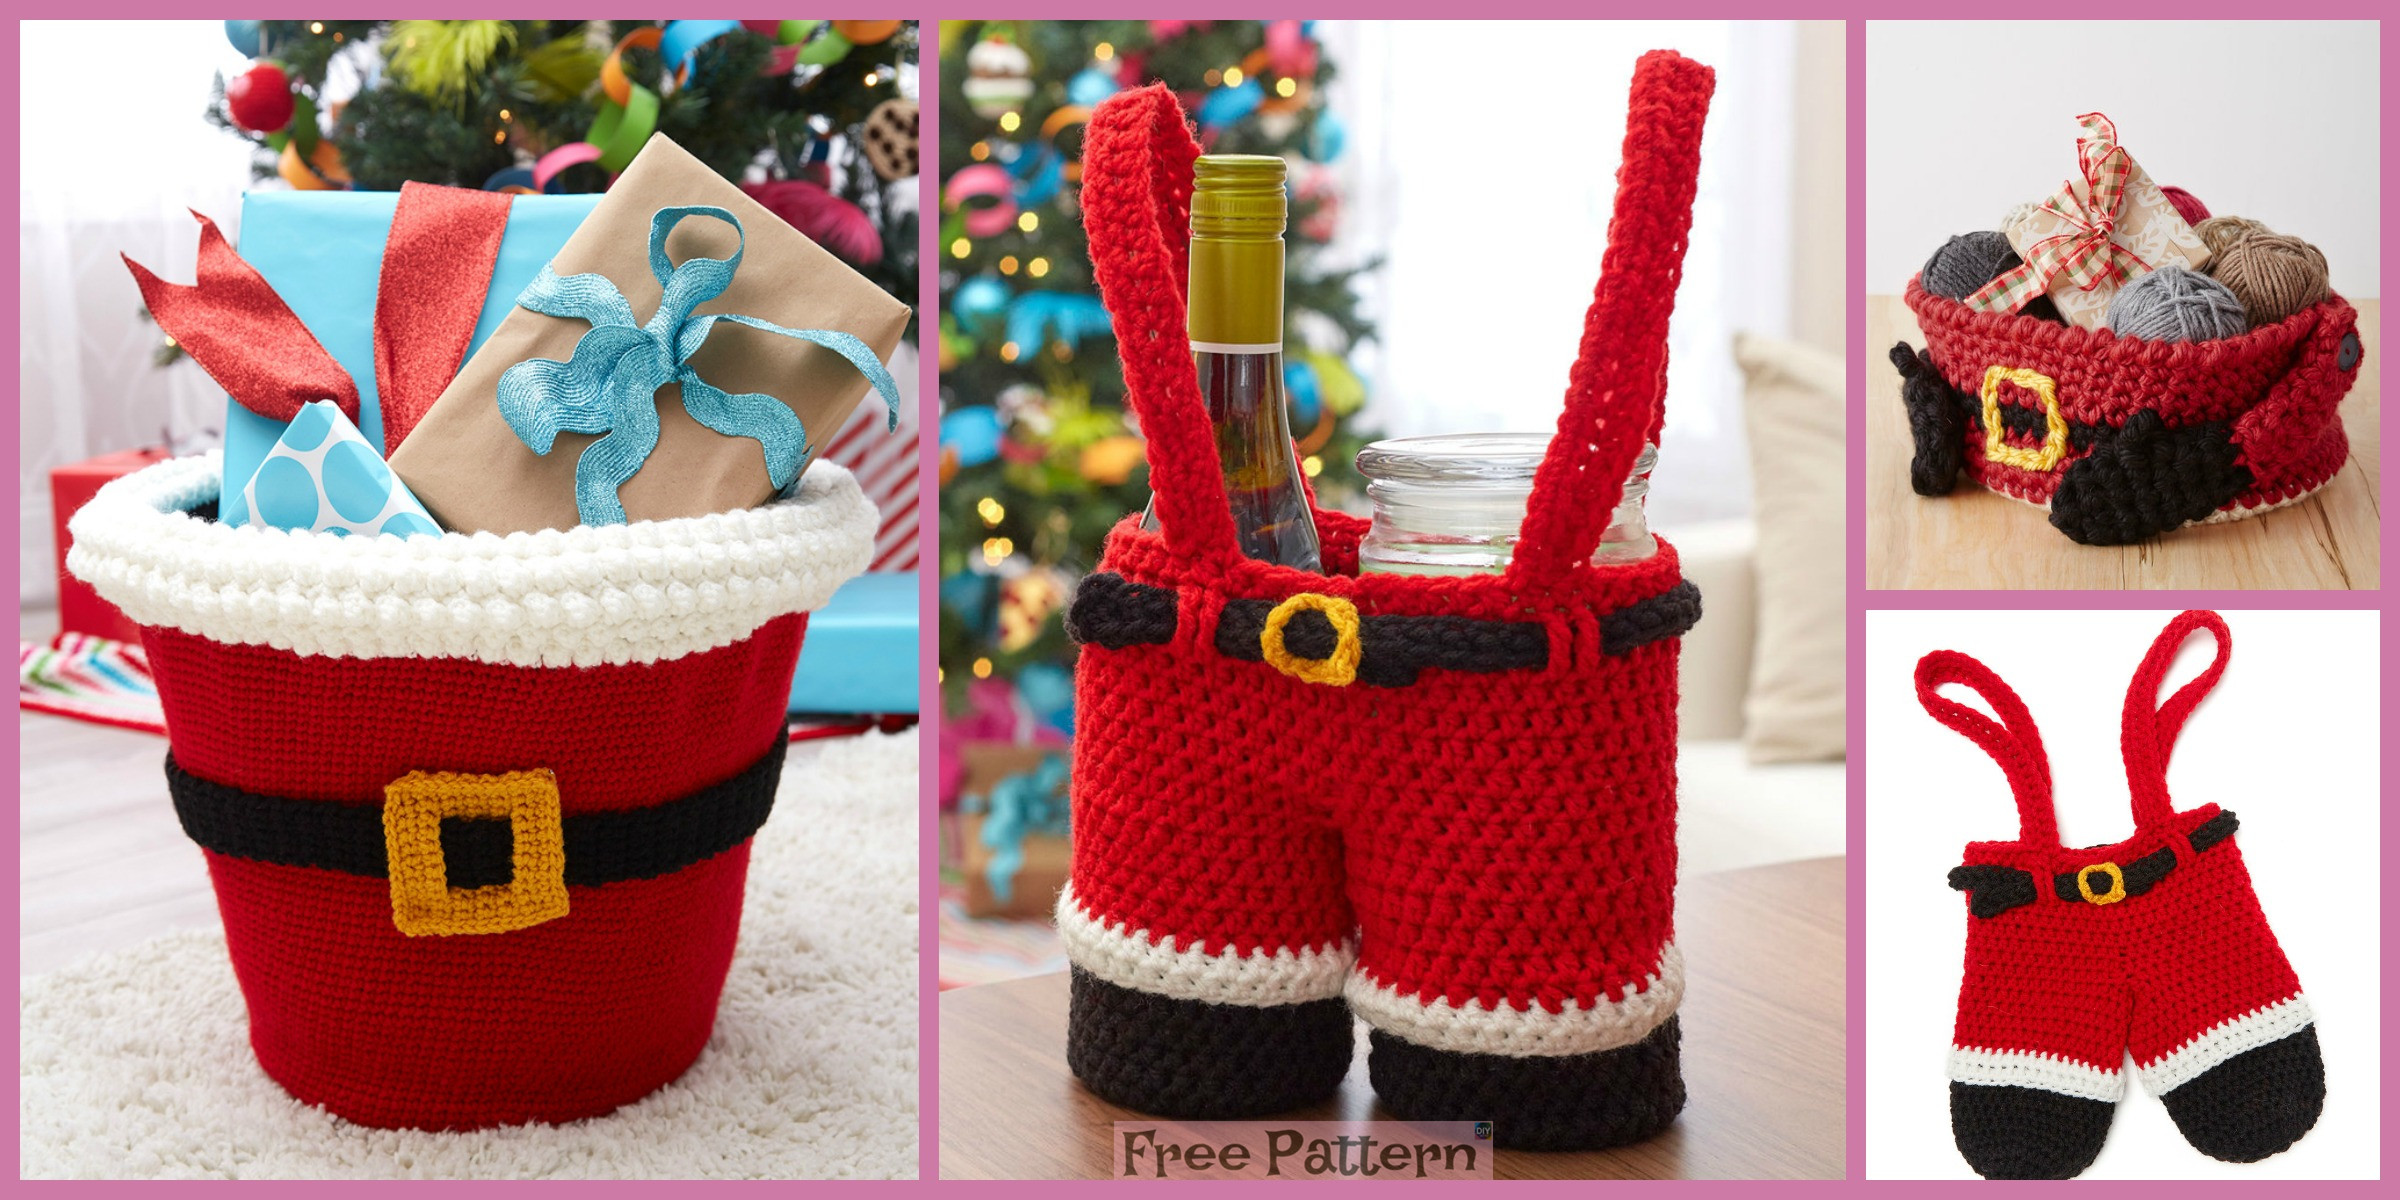 Crochet Santa's Gift Baskets – Free Patterns